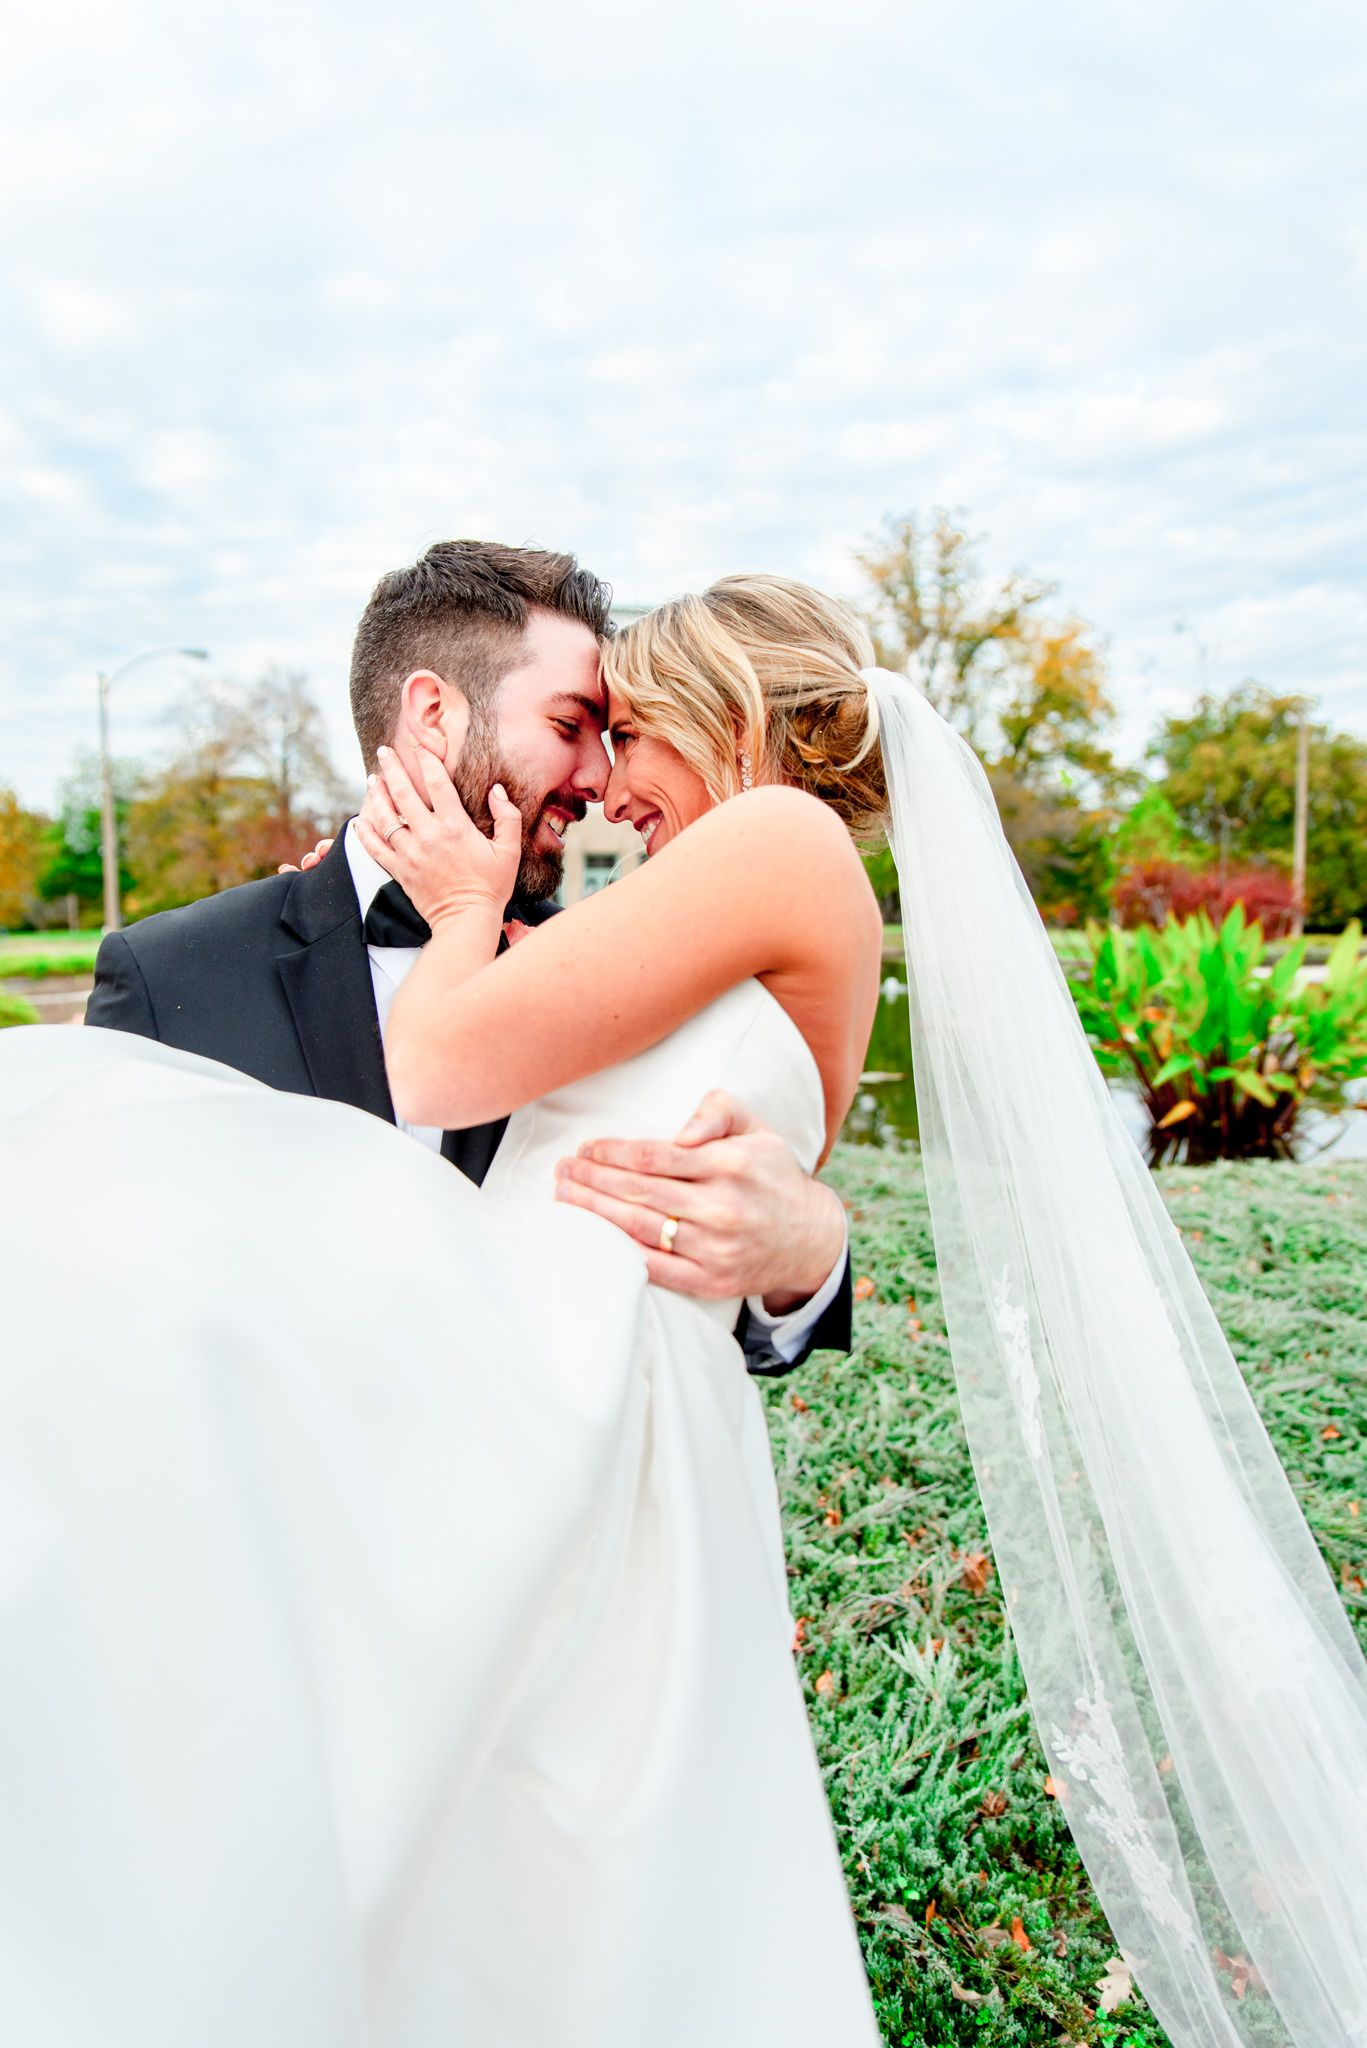 groom carrying bride in his arms and smiling at each other at the Jewel Box in Forest Park, STL